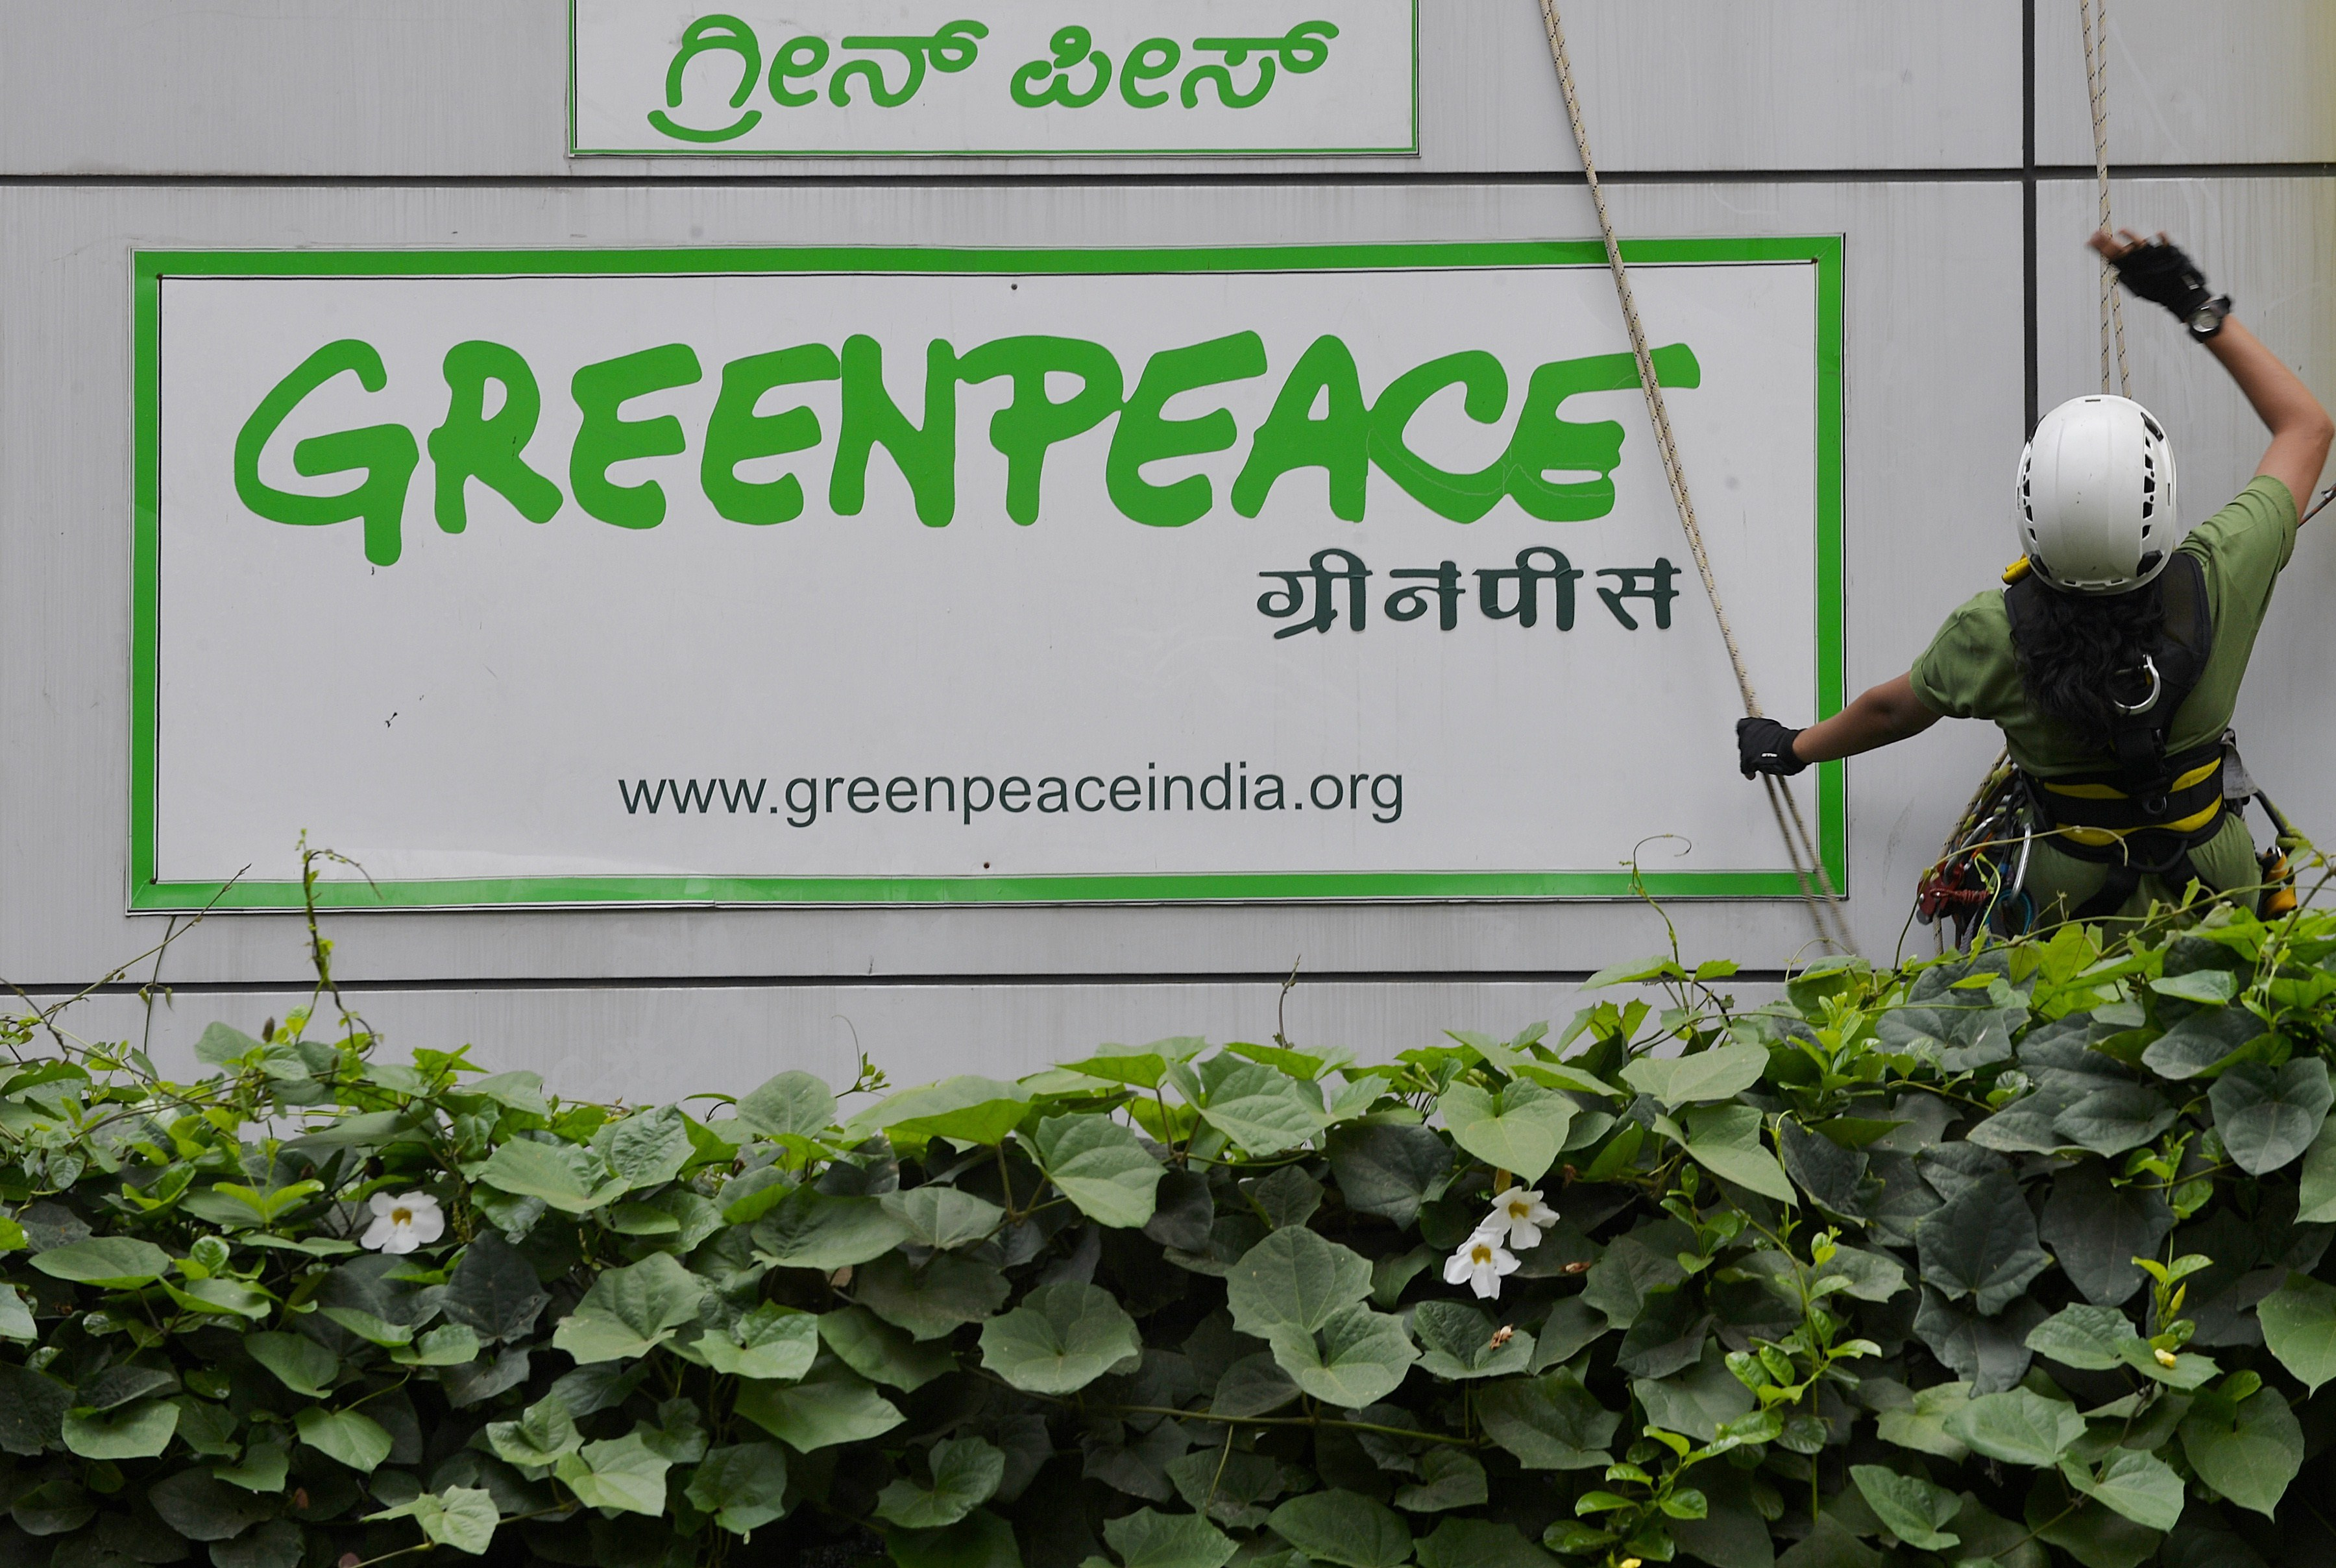 Activists of GreenPeace rappell down their office building where they are head quartered to unfurl banners 'democracy' and 'freespeech' in Bangalore on May 15, 2015.